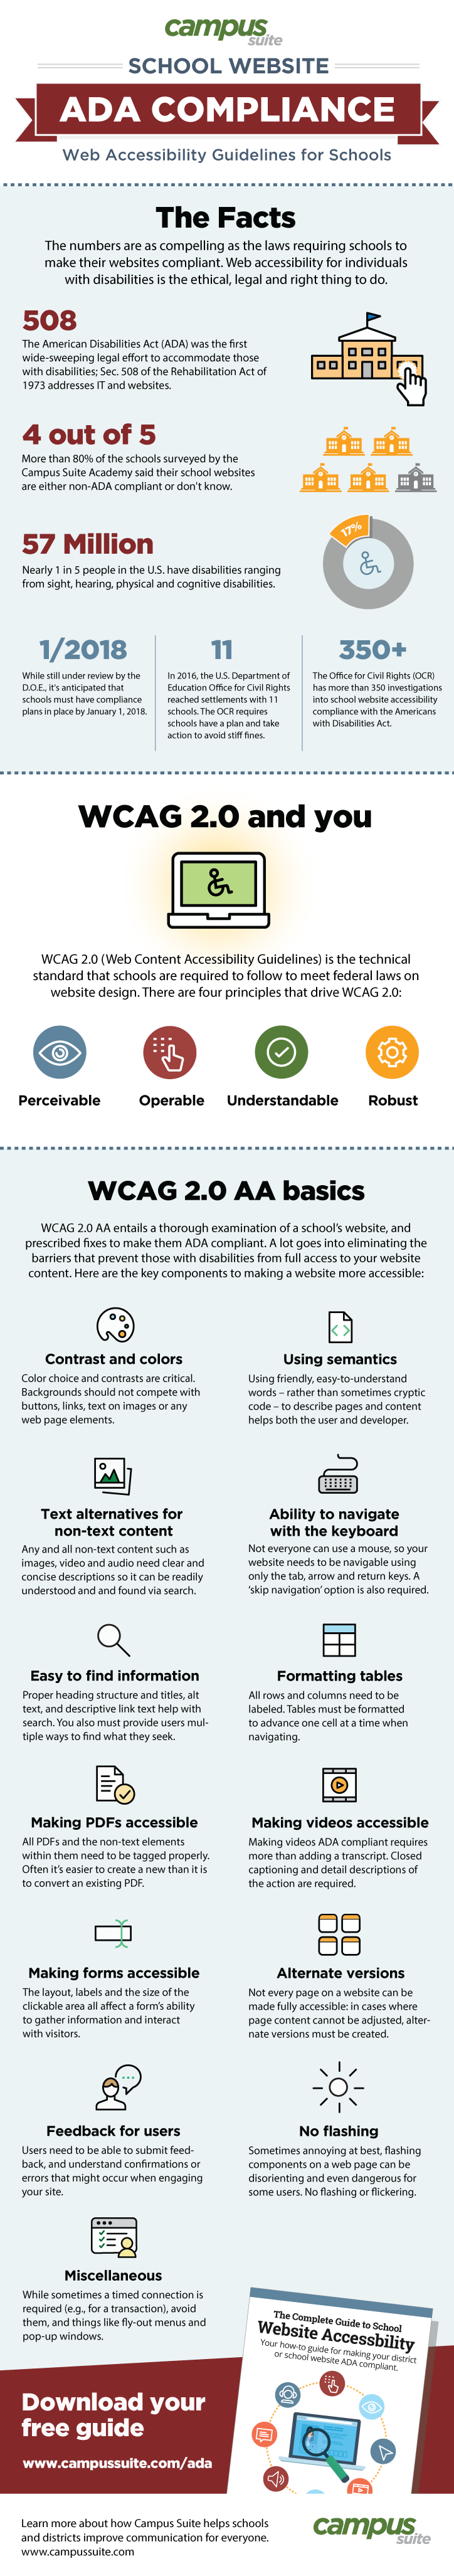 School Website Accessibility ADA Compliance Infographic